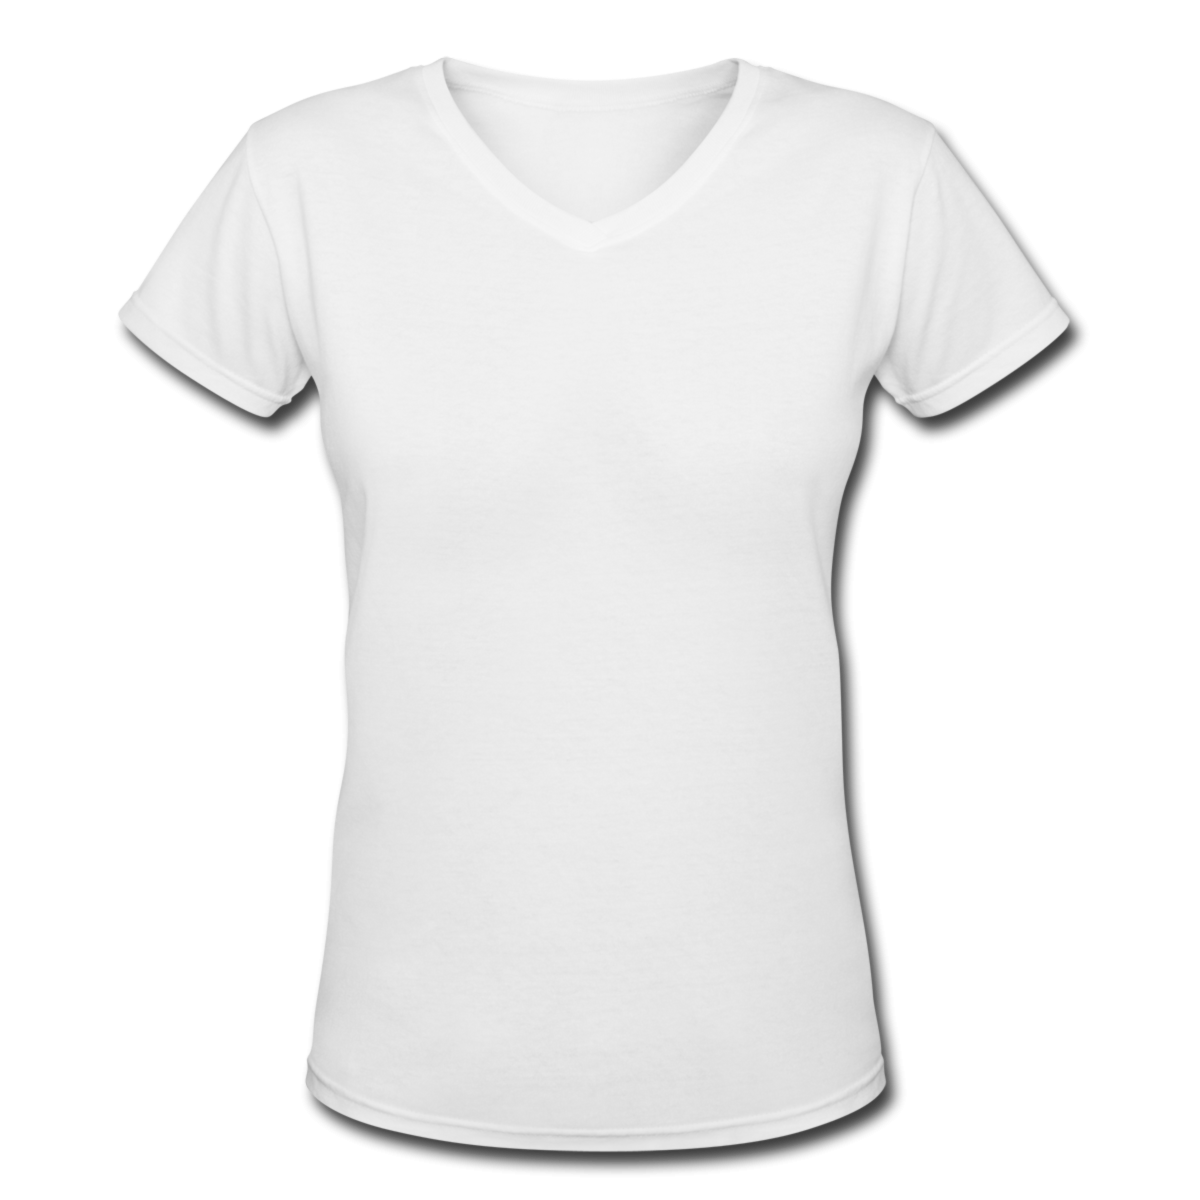 Blank T Shirt Clipart PNG image #30270